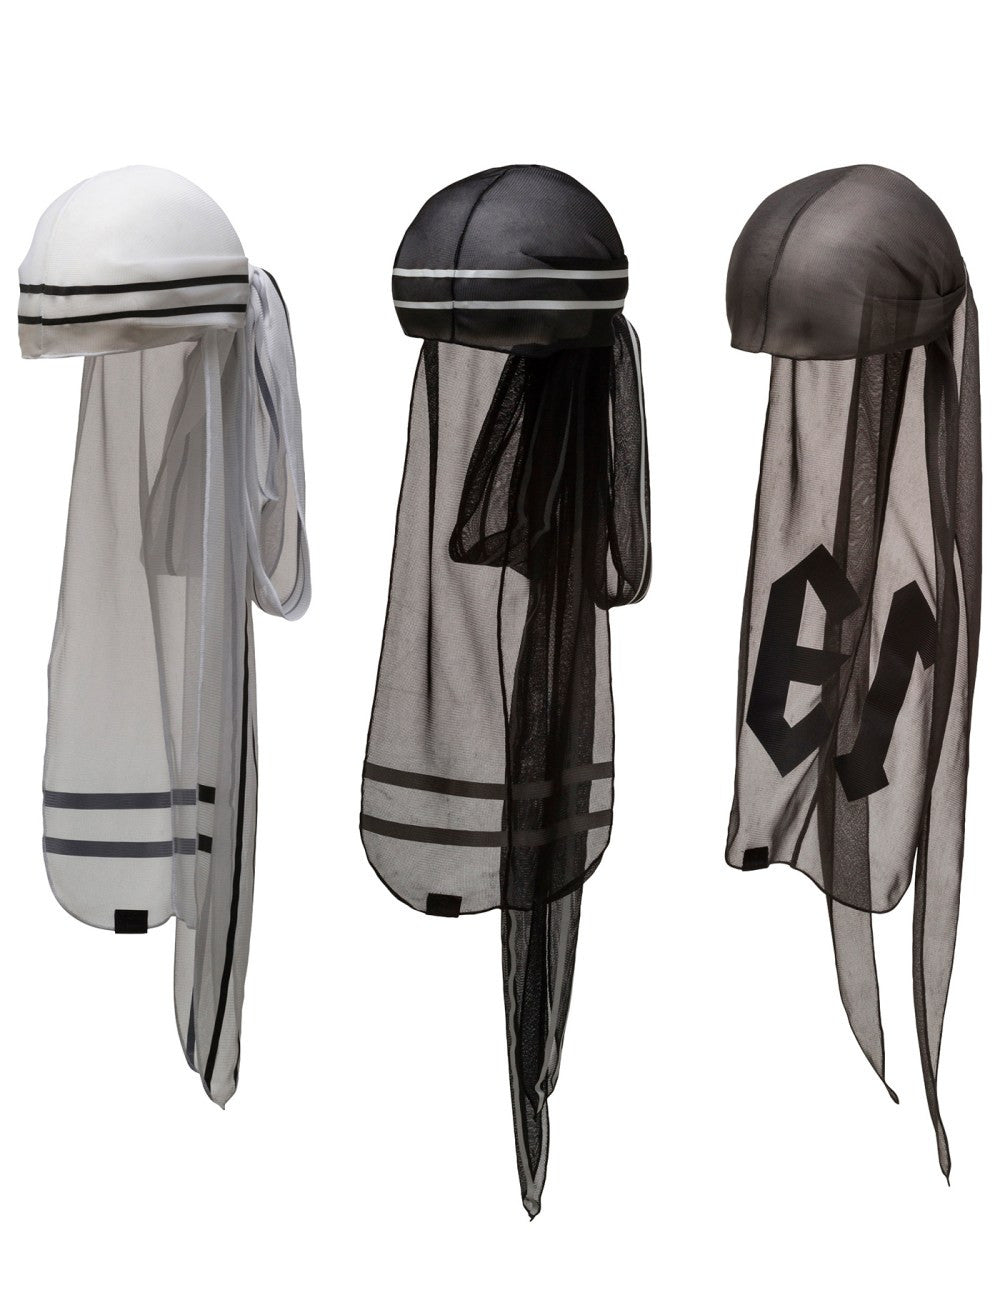 FENTY by Rihanna Caps (3 Pack)